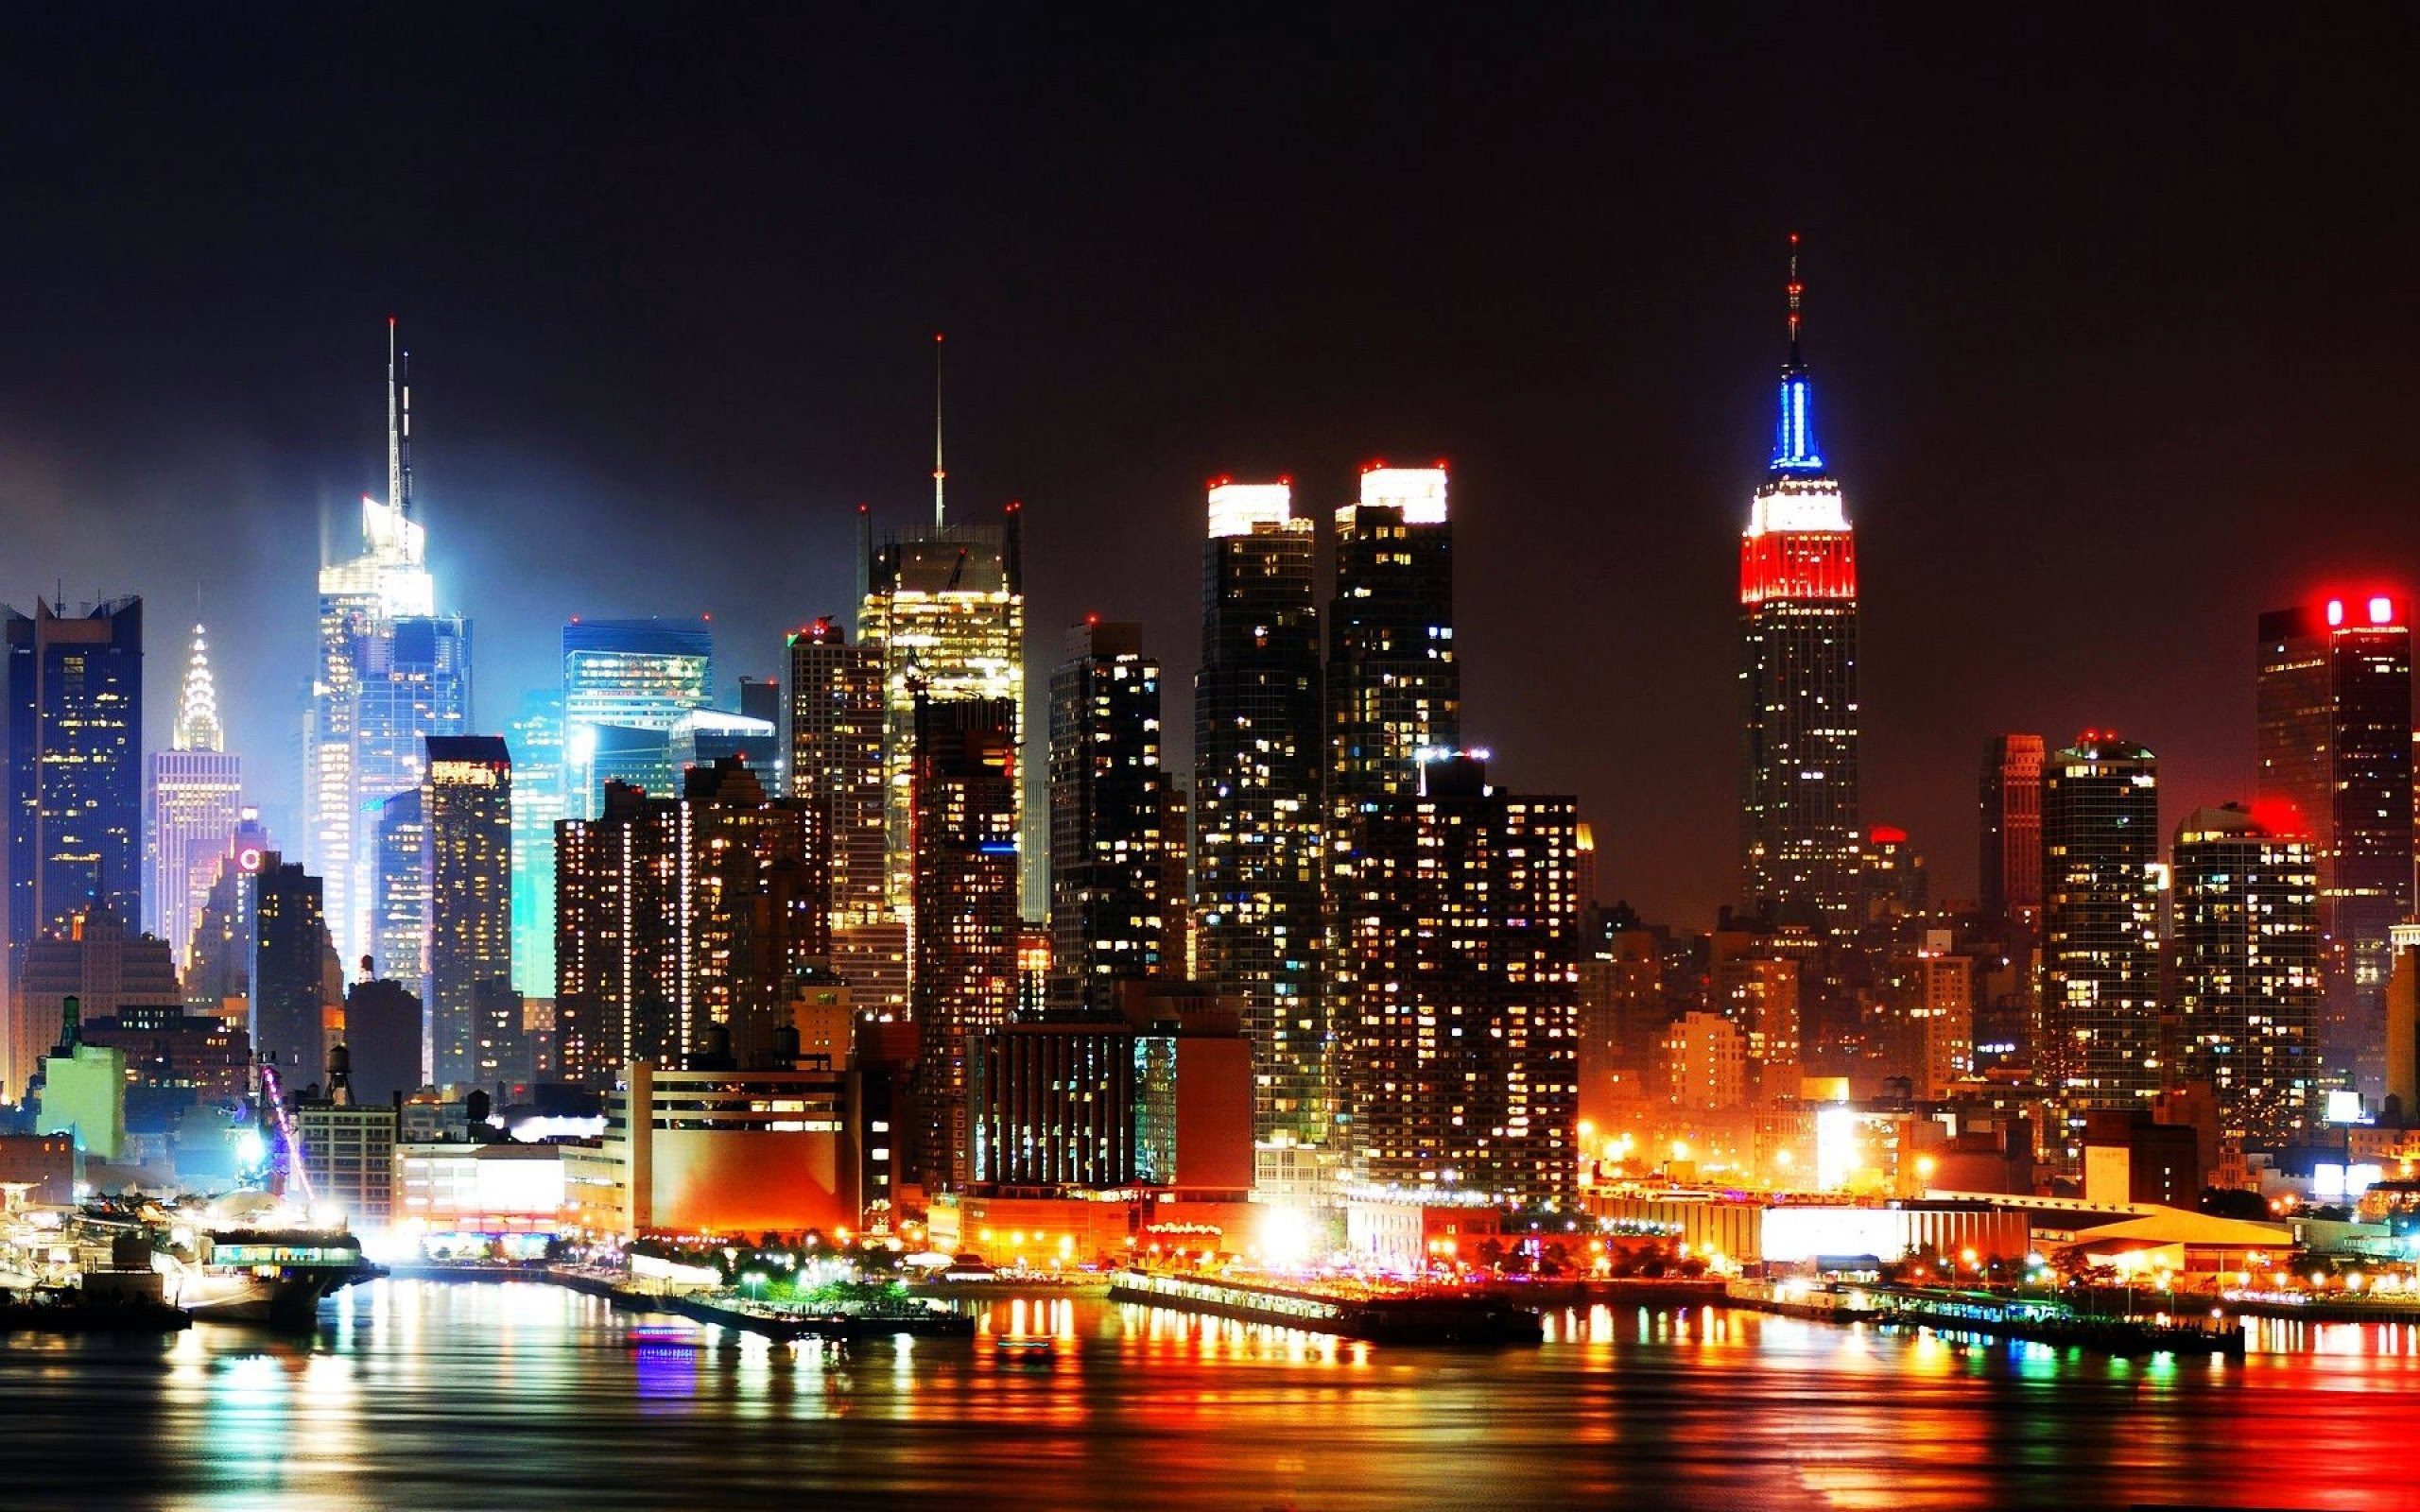 Wallpapers And Screensavers Ny Skyline 64 Images